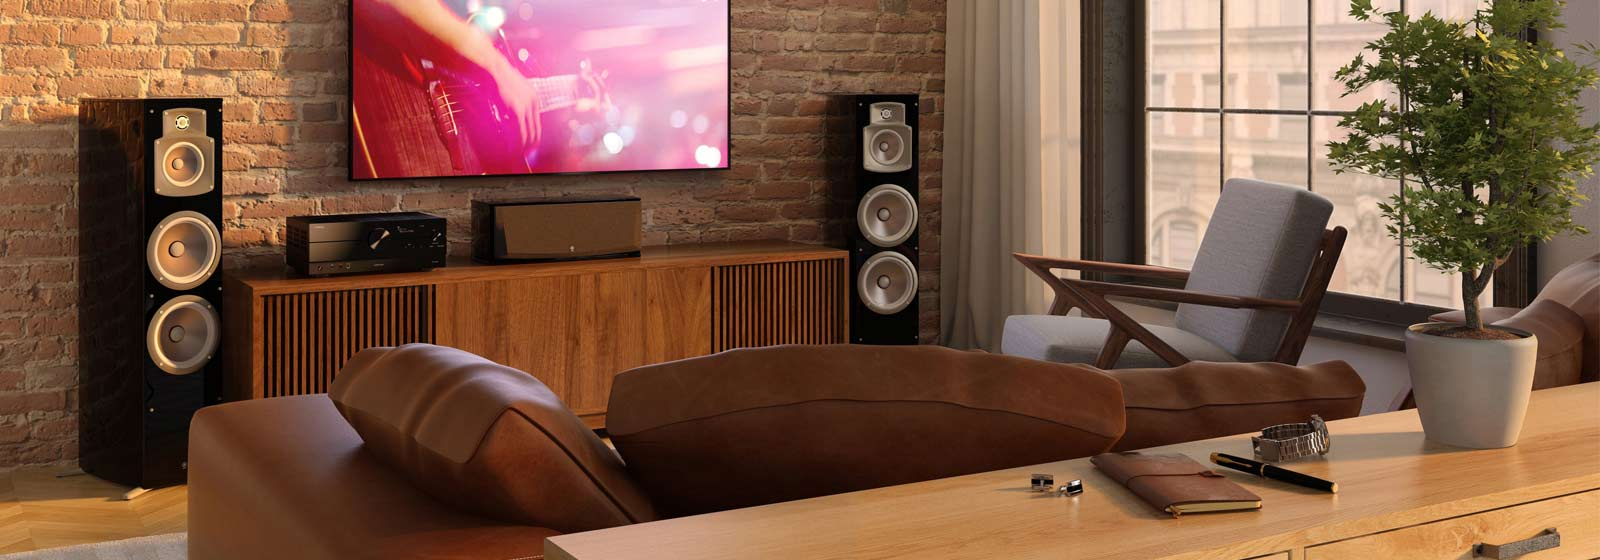 Yamaha AVENTAGE 7.2-Channel AV Receiver with 8K HDMI